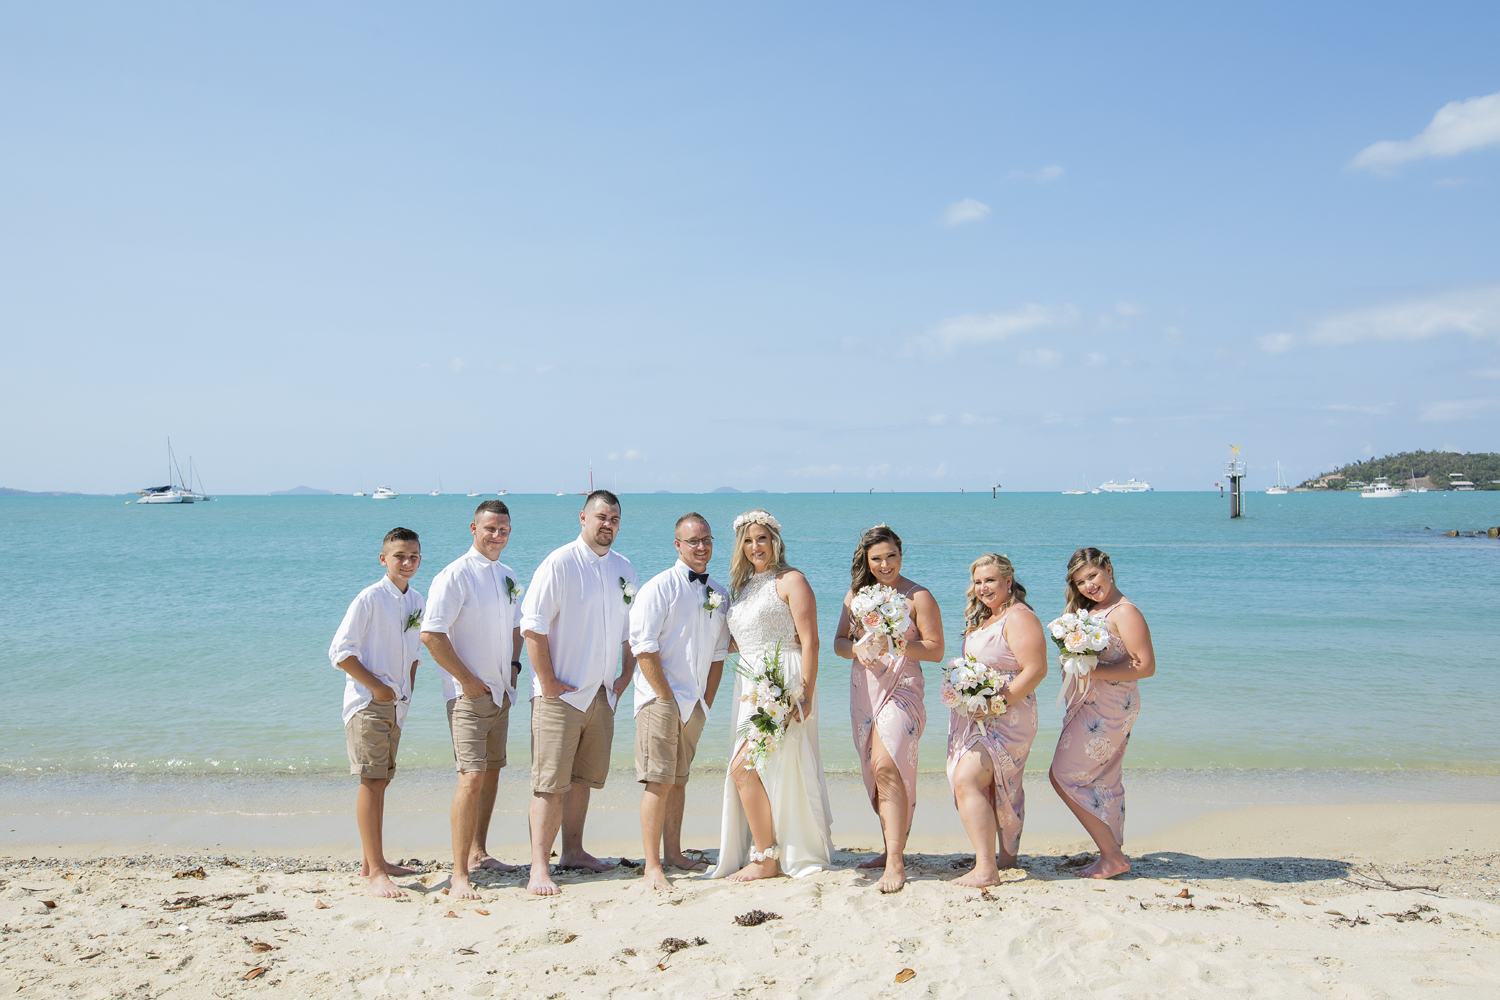 Whitehaven Beach Wedding photography in the Whitsundays by Brooke Miles